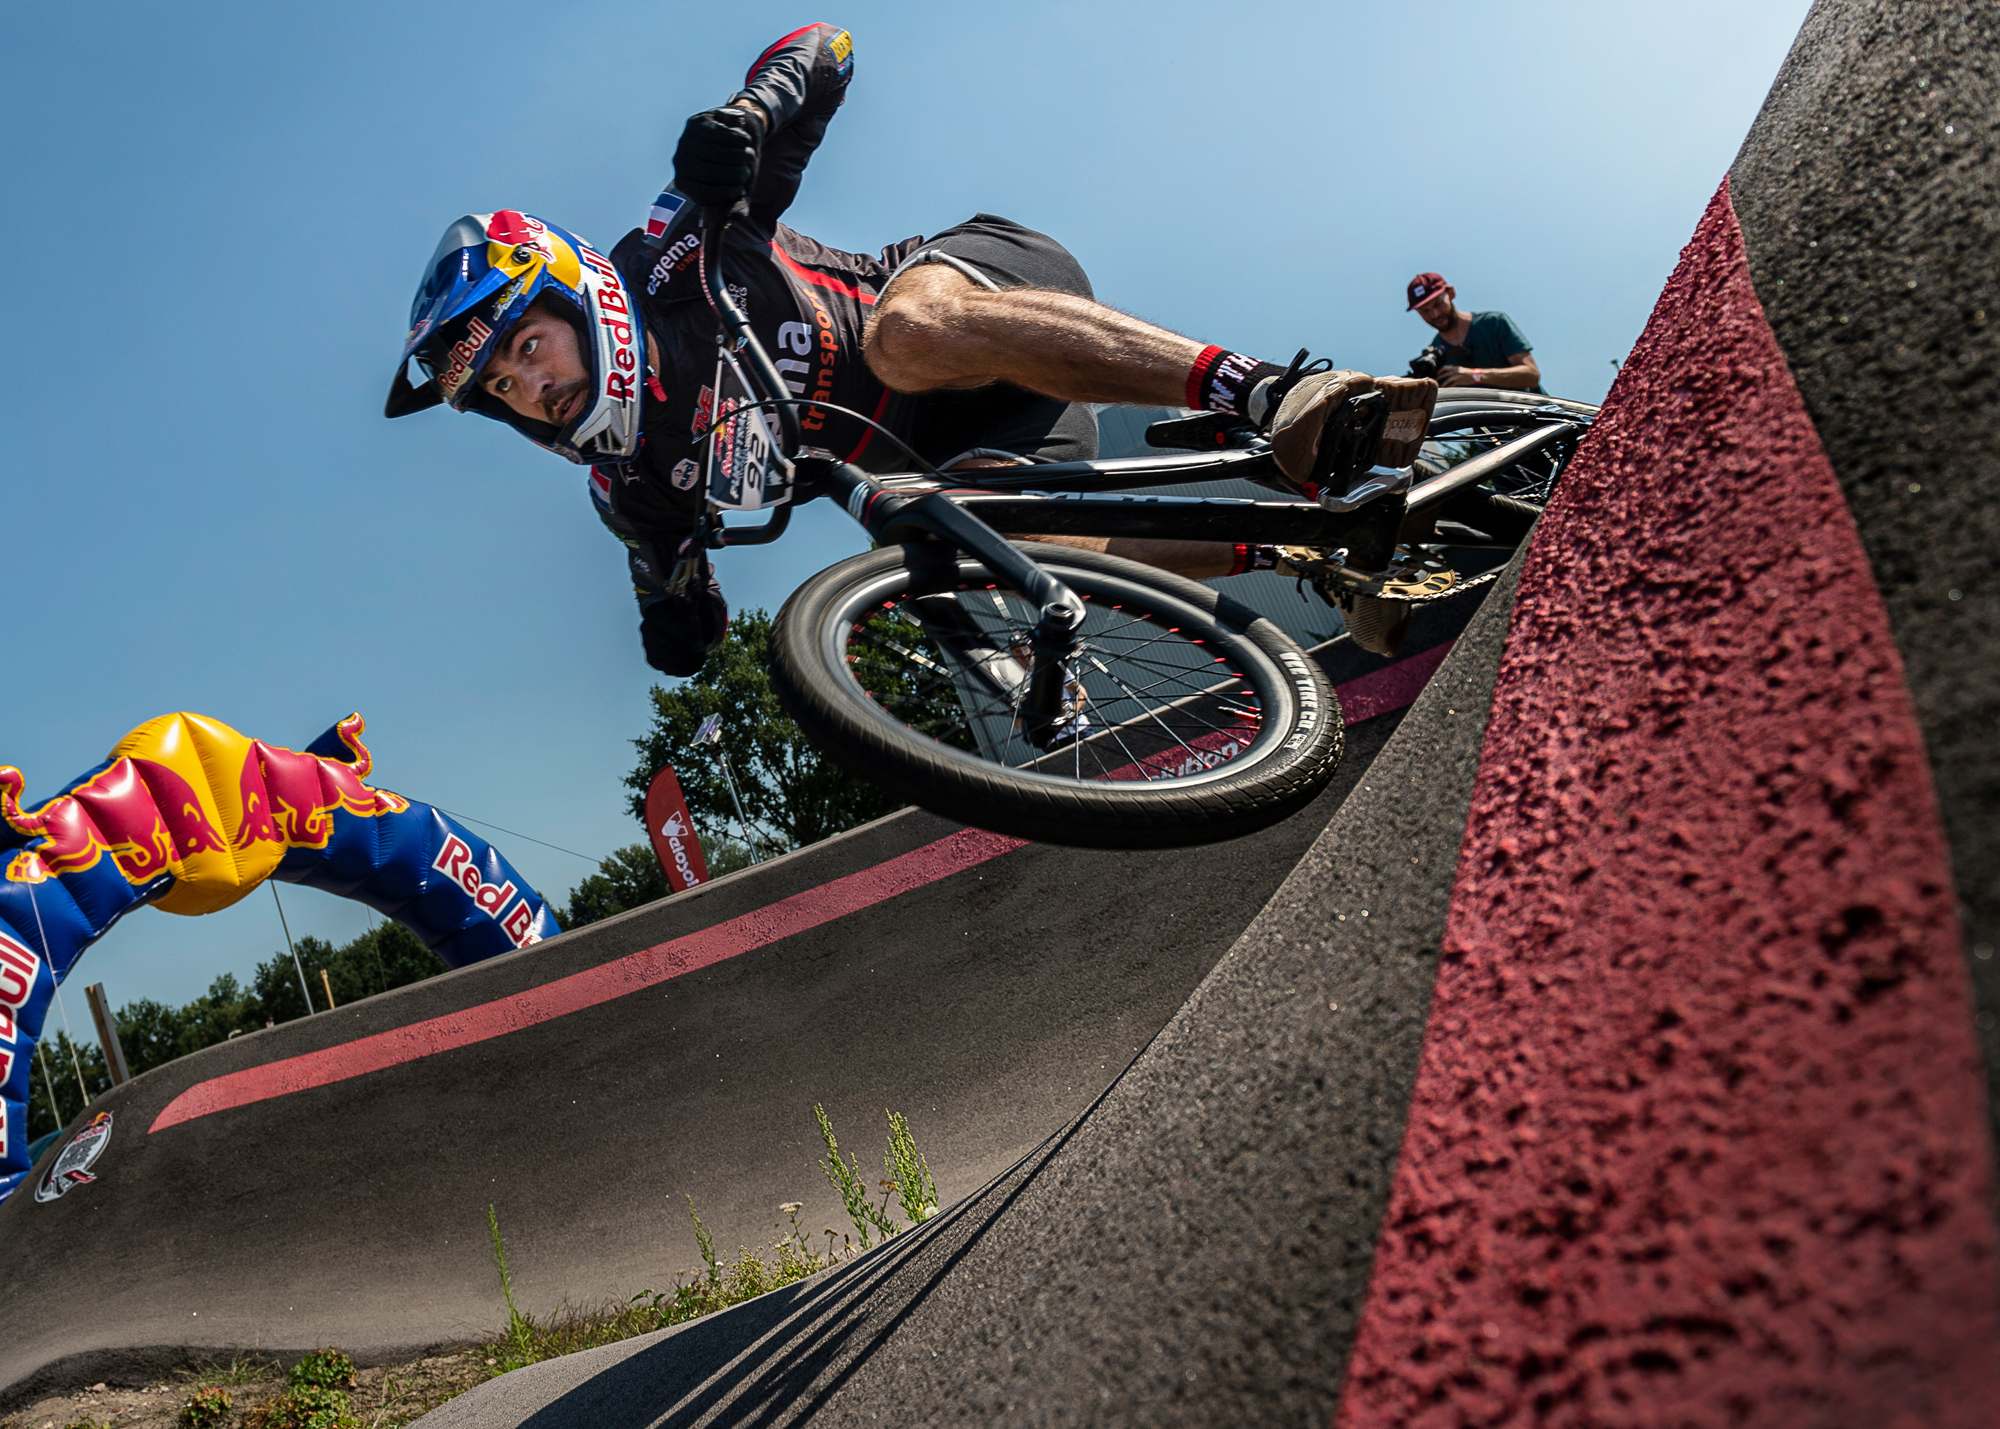 Het was een fantastisch evenement, dankjewel Nederland. The Red Bull Pump Track World Championship goes Dutch.